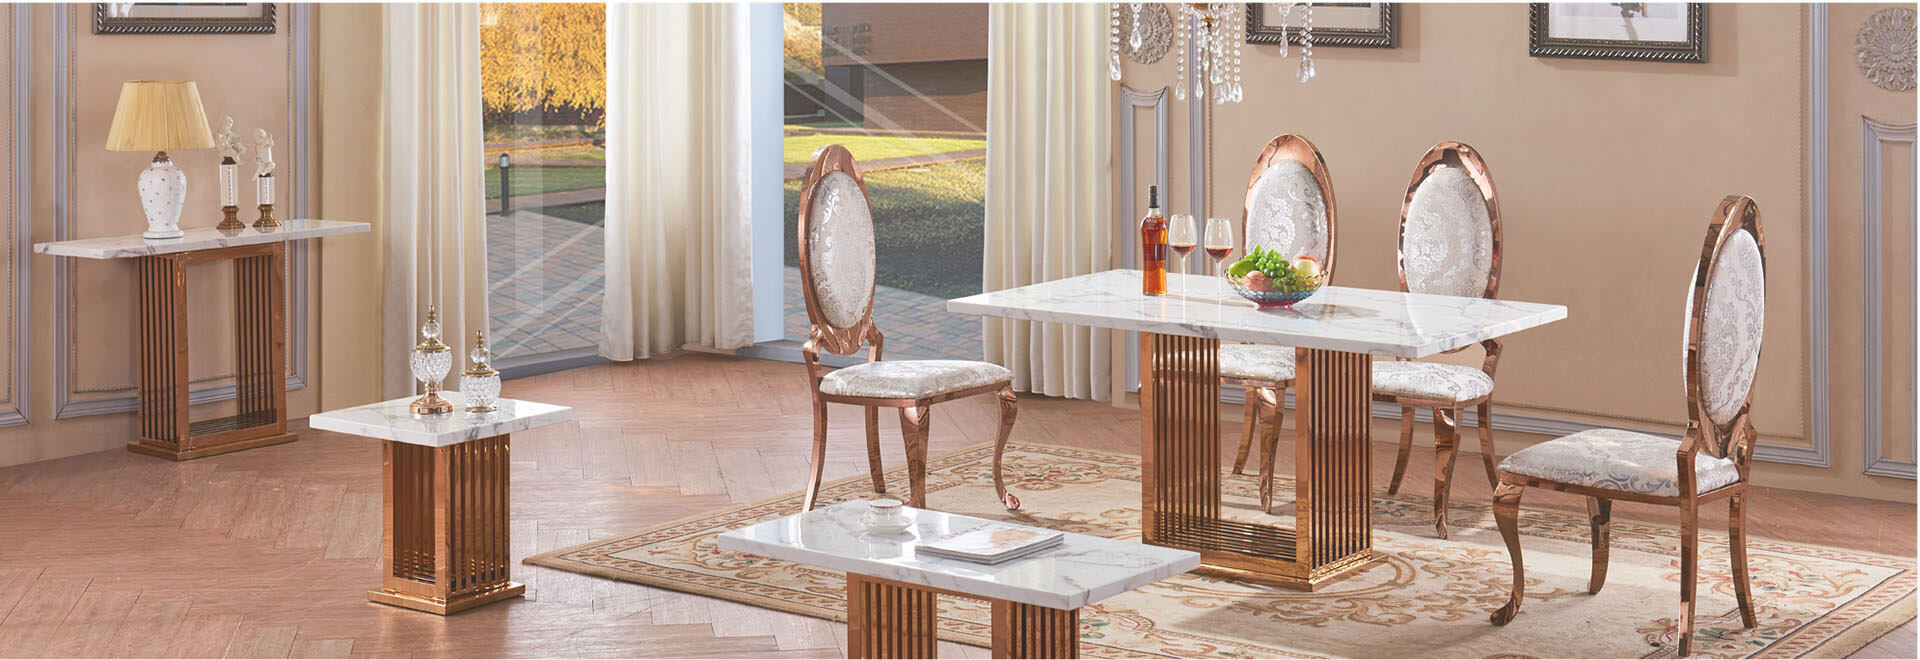 6 seater marble with gold stainless steel dining table set